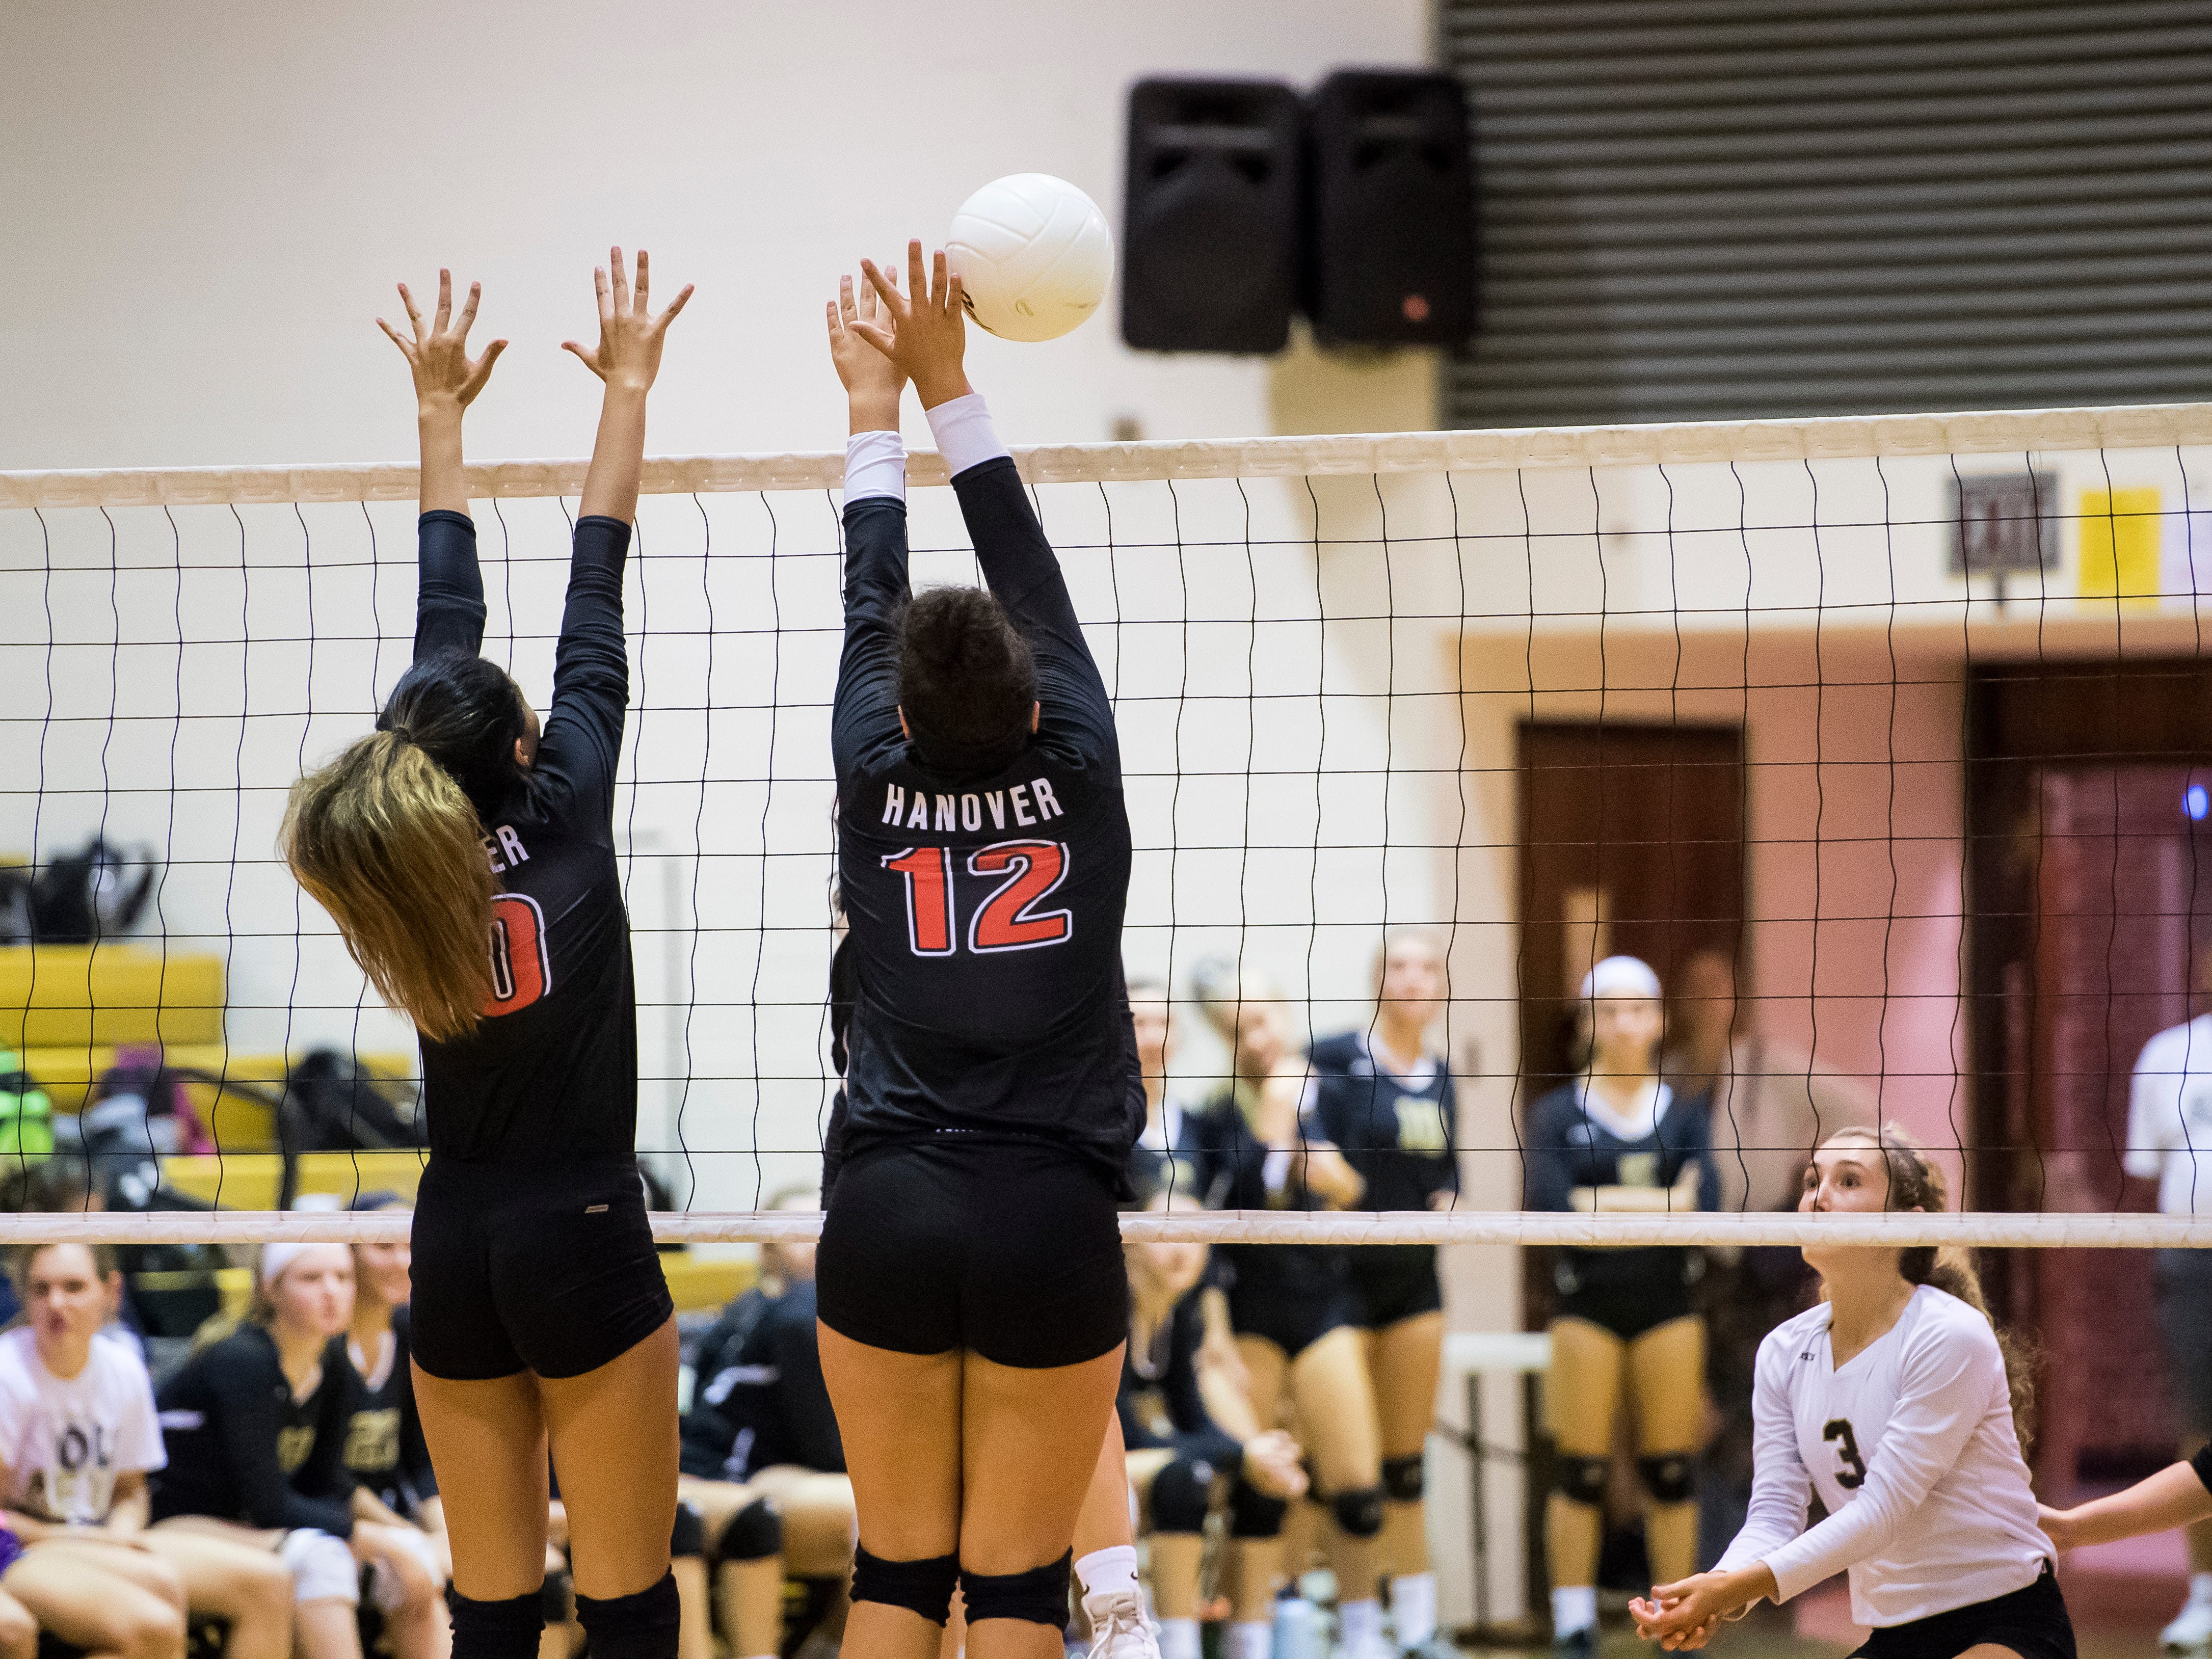 Hanover's Nakhaiya Jacobs (12) and Nancy Hernandez jump to attempt a block against Delone Catholic on Tuesday, September 18, 2018. The Squirettes swept the Hawkettes 25-16, 25-19, 25-14.